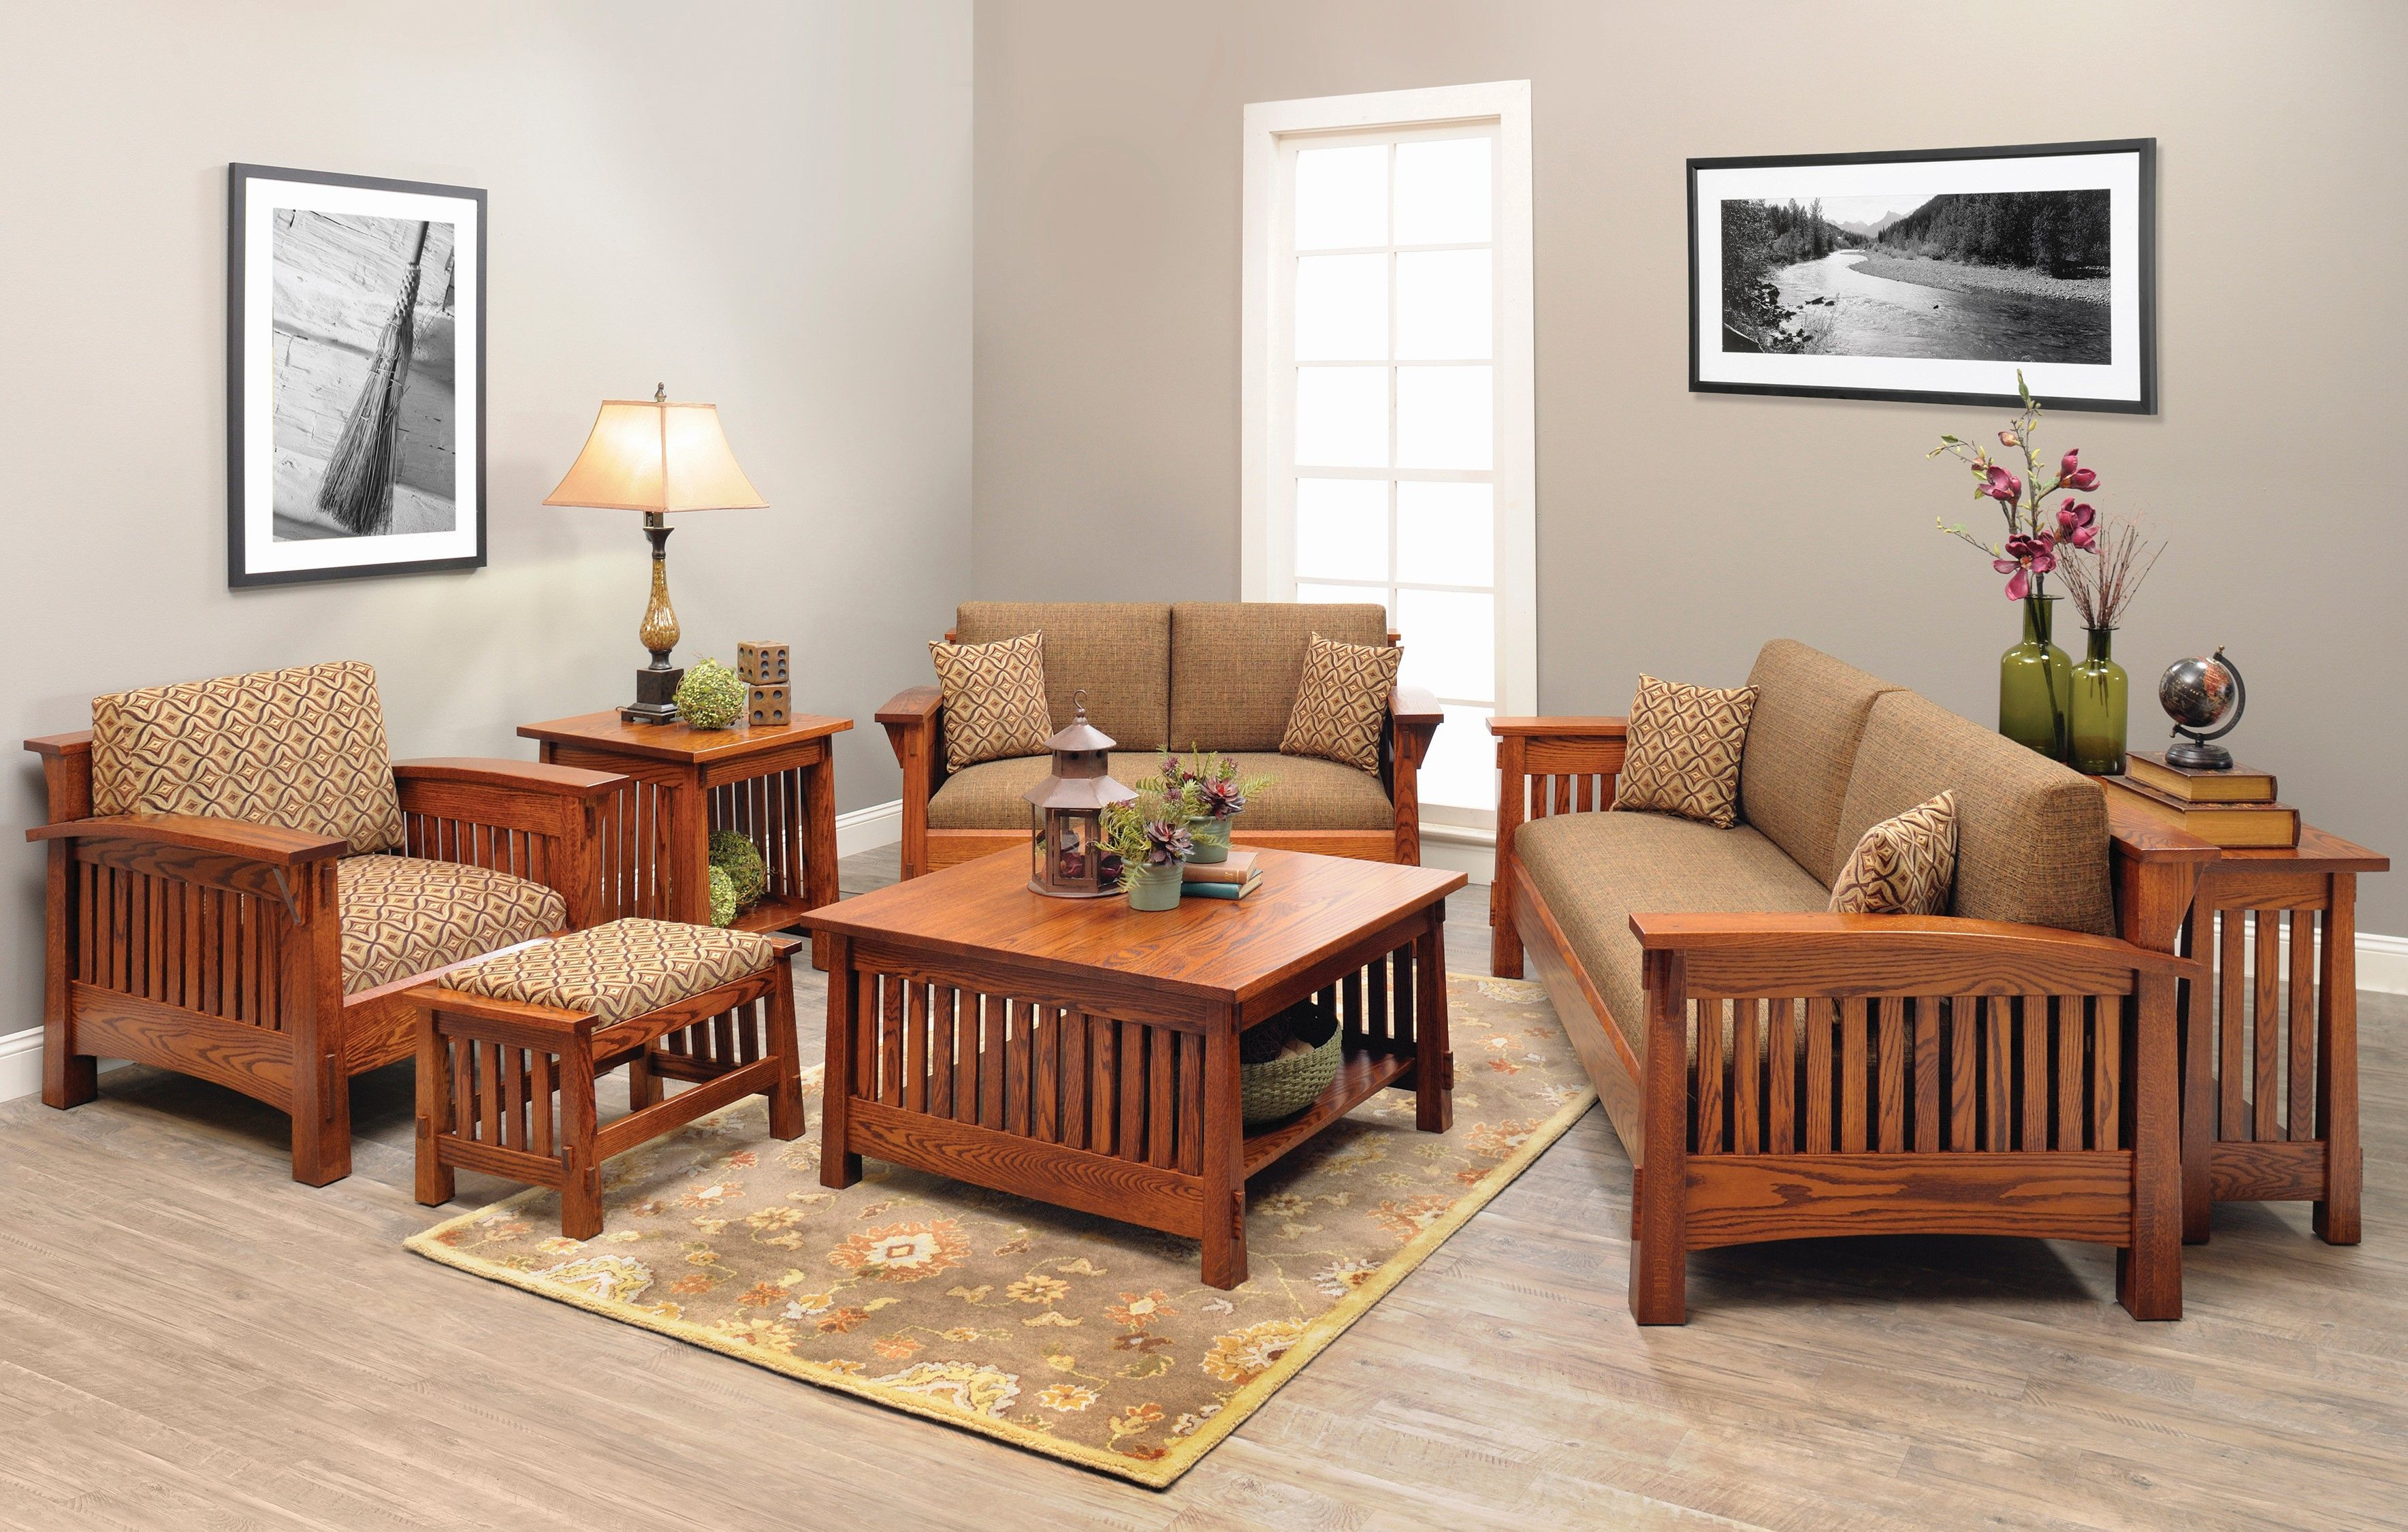 Shop The Look Countryside Mission Living Room Set Living Room Sets Furniture Living Room Sofa Set Mission Style Living Room Furniture